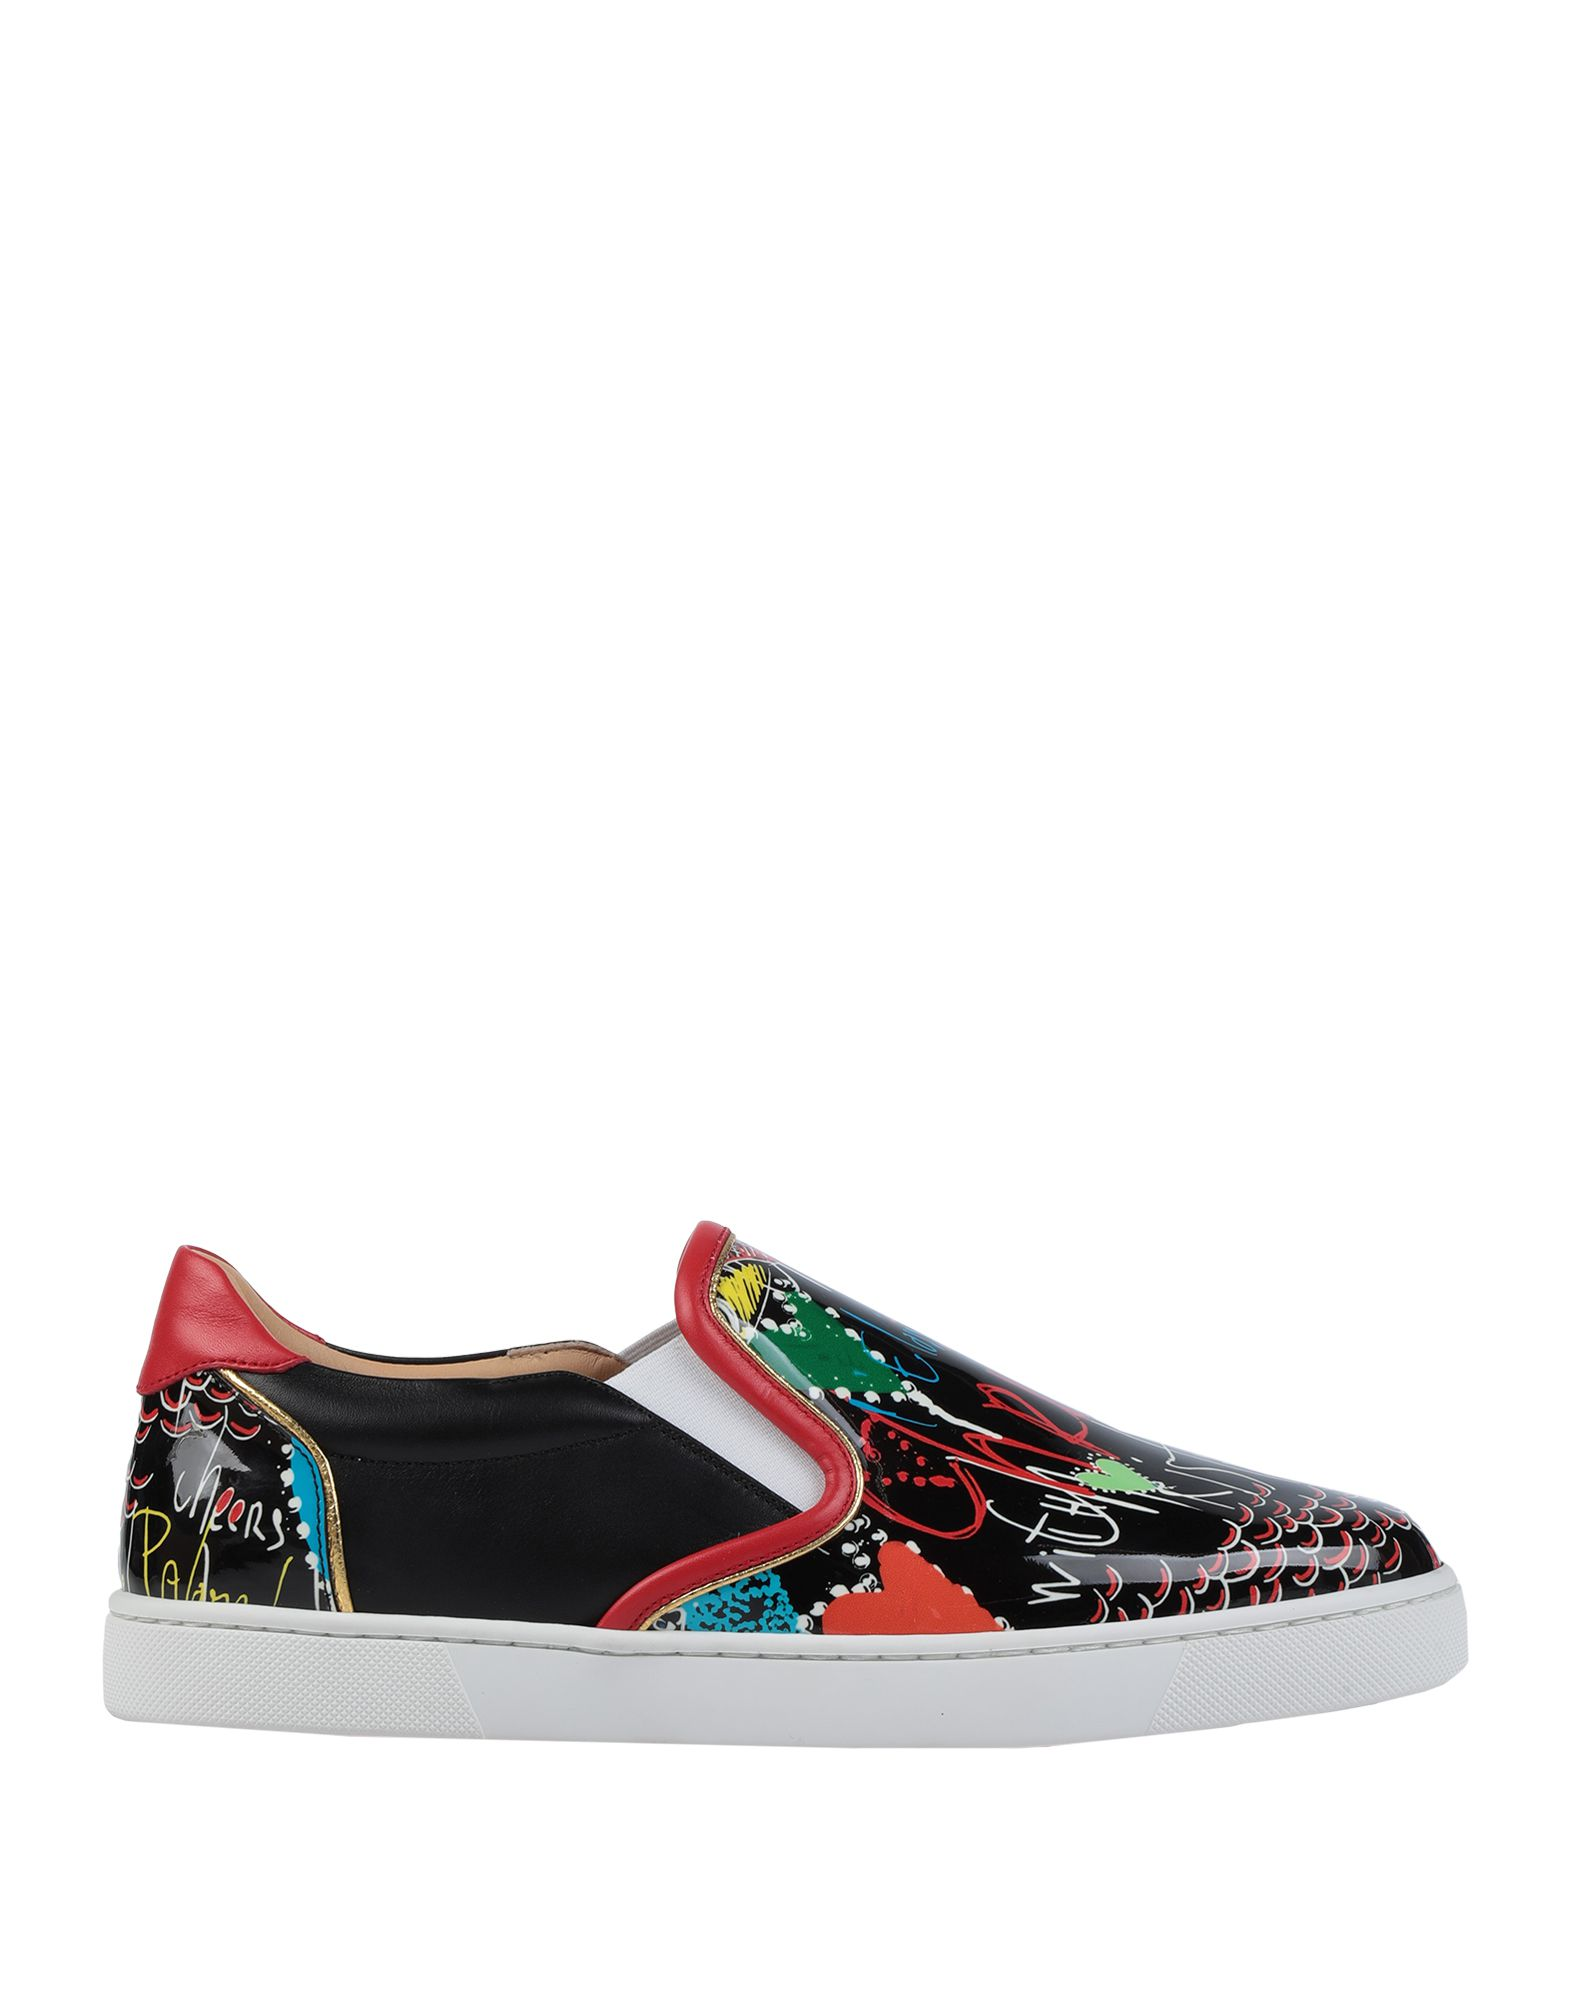 competitive price 9f6bf 2ac75 CHRISTIAN LOUBOUTIN Sneakers - Footwear | YOOX.COM